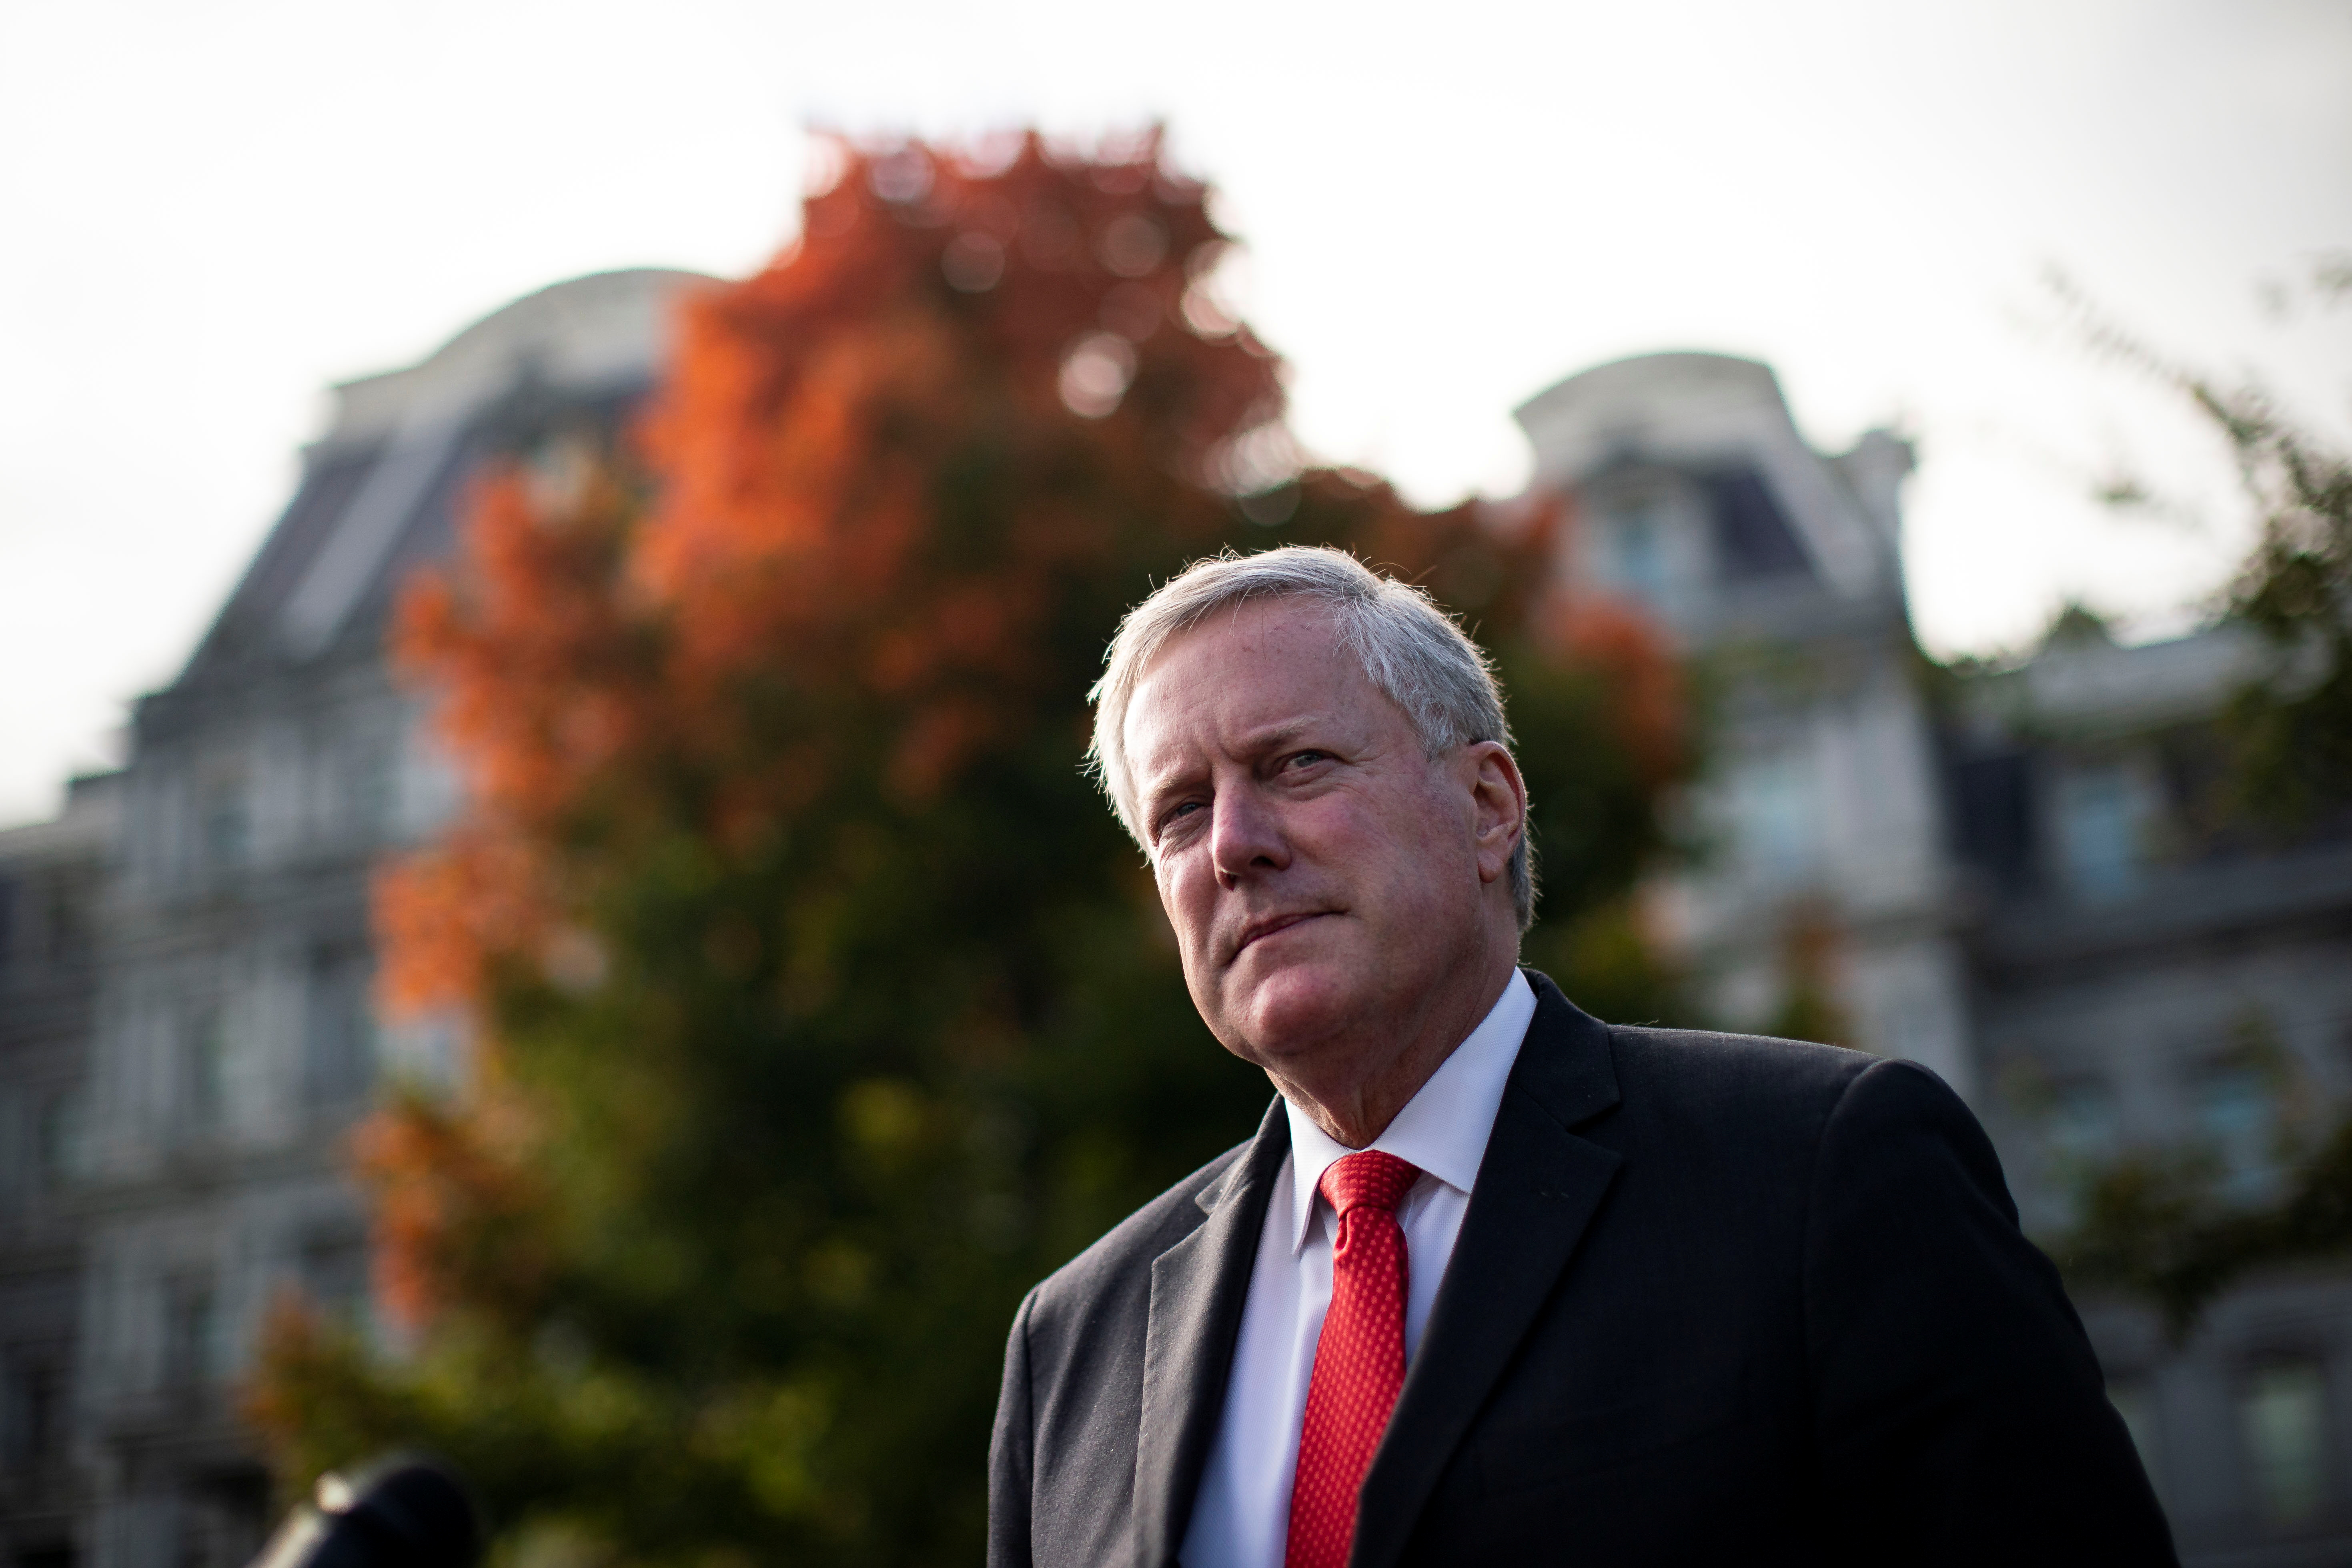 White House Chief of Staff Mark Meadows speaks to reporters following a television interview, outside the White House in Washington, U.S. October 21, 2020. REUTERS/Al Drago